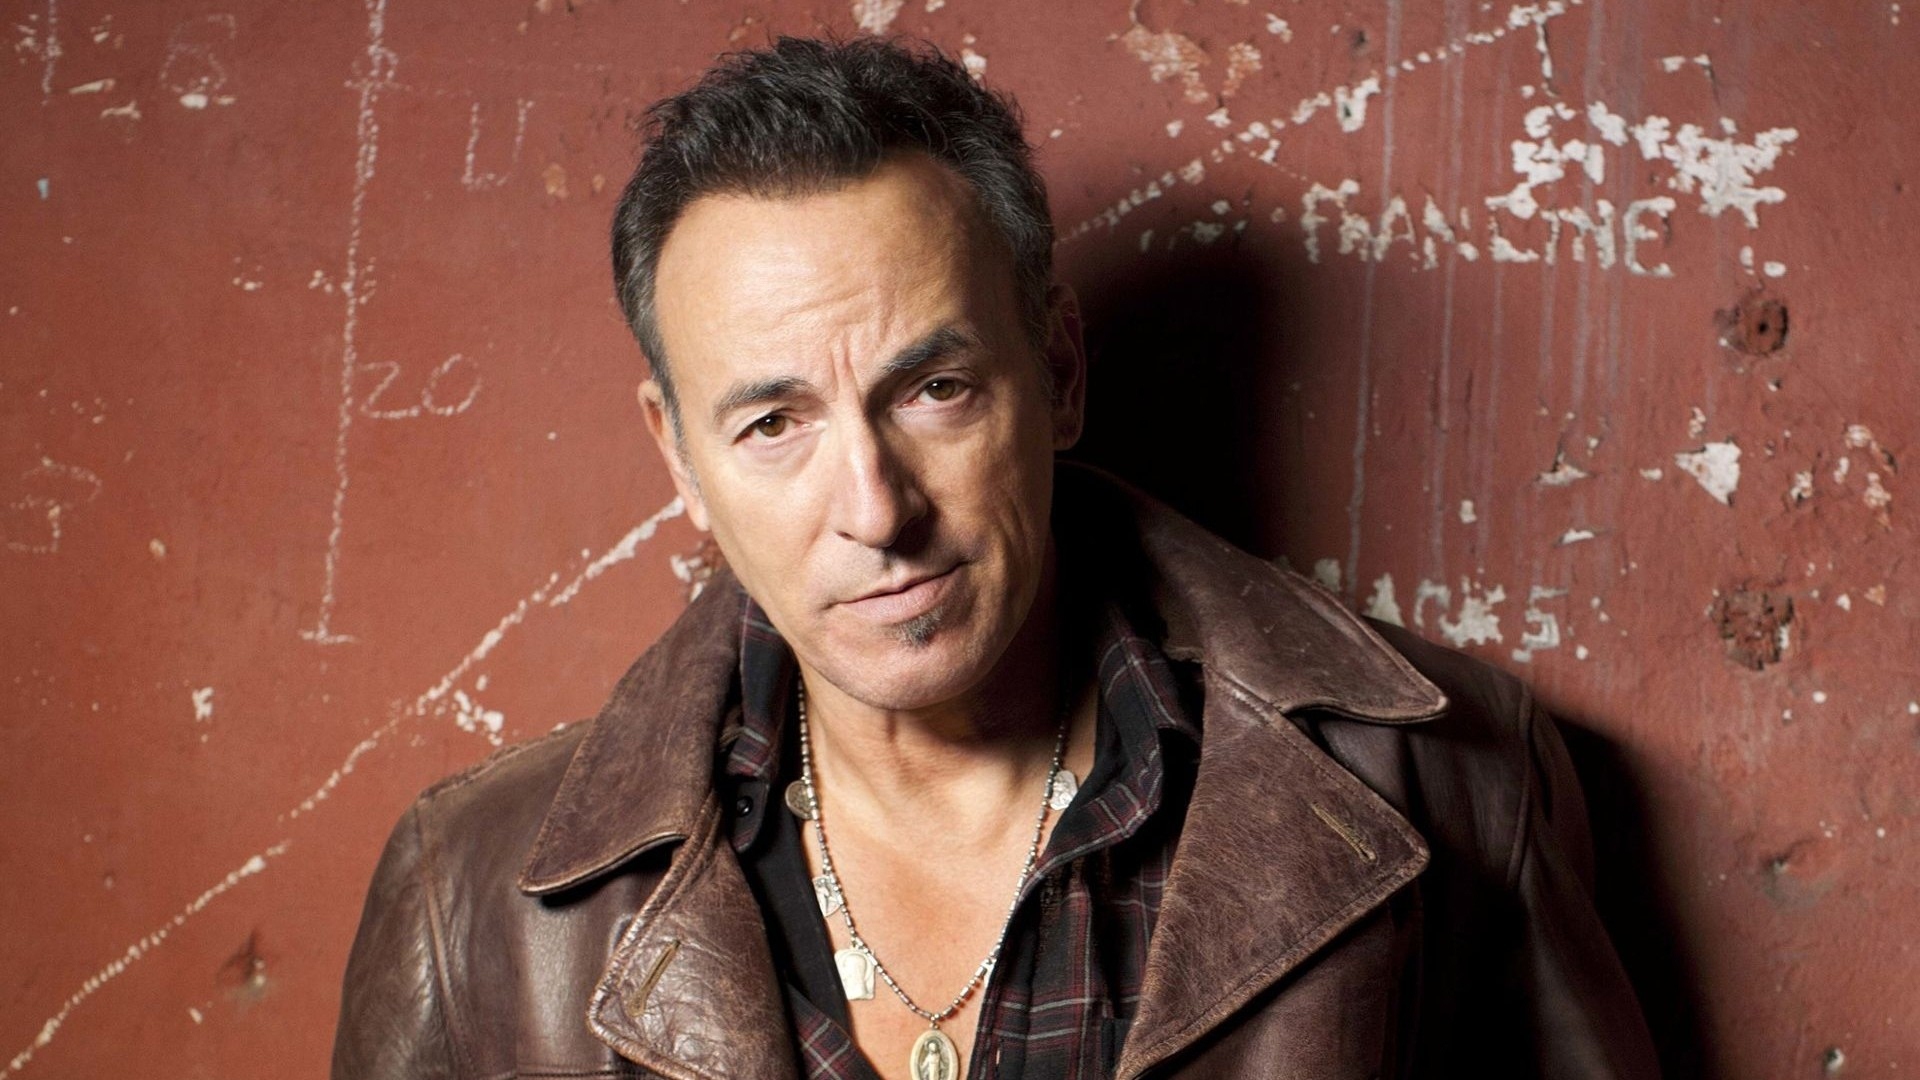 Bruce Springsteen High Quality Wallpapers